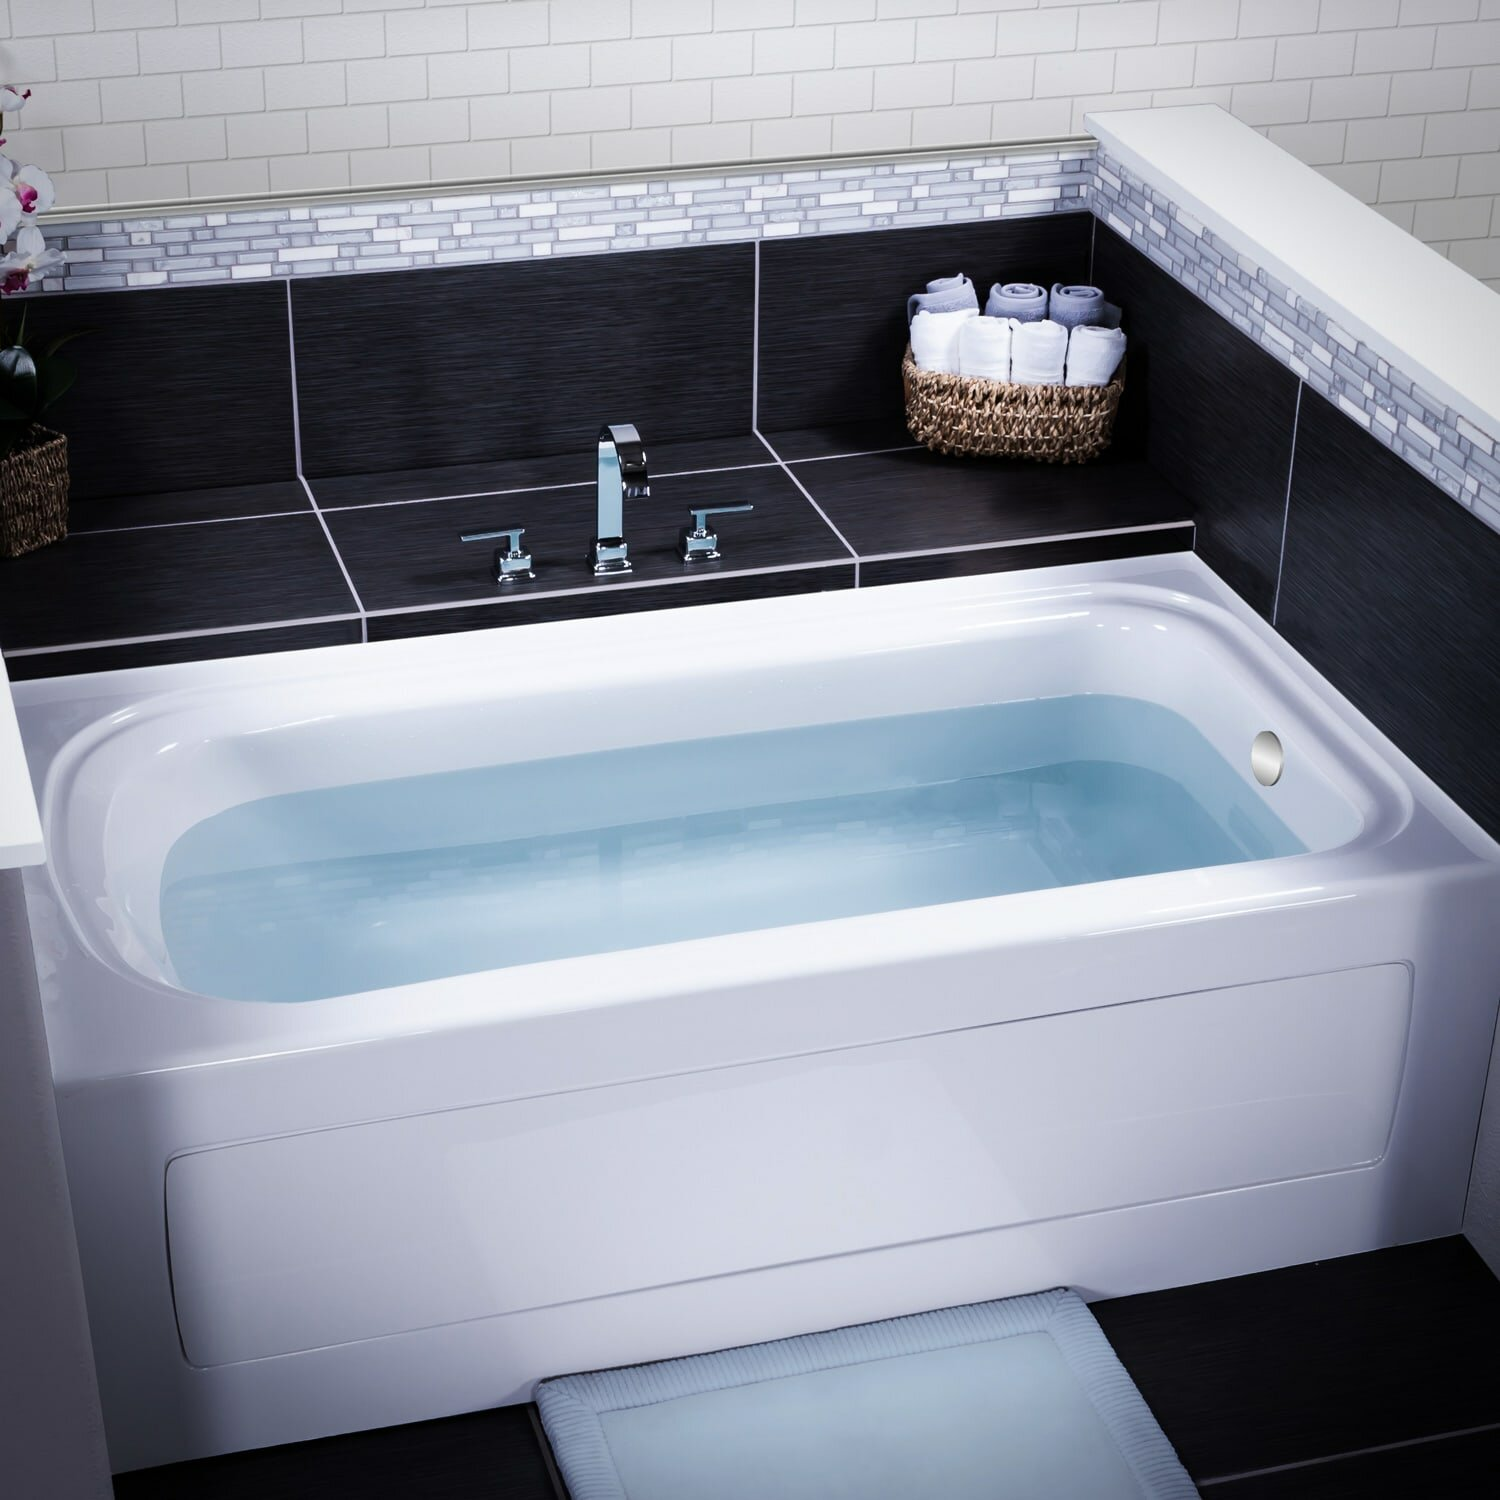 Exelent Alcove Bath Tub Crest - Bathtub Design Ideas - klotsnet.com